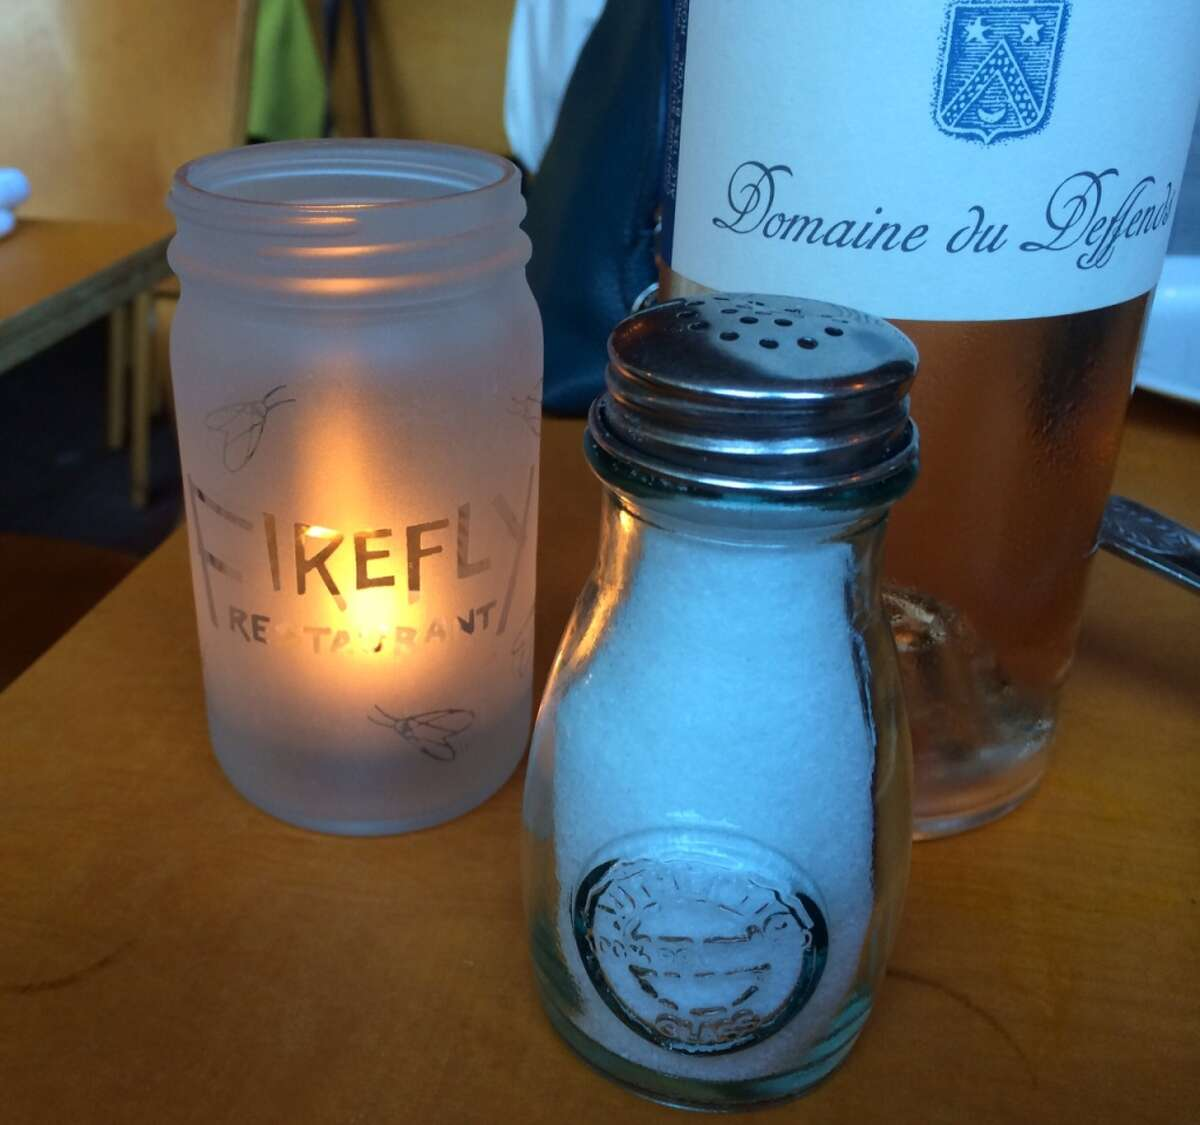 Each table at Firefly is set with candles with the restaurant's name and logo.